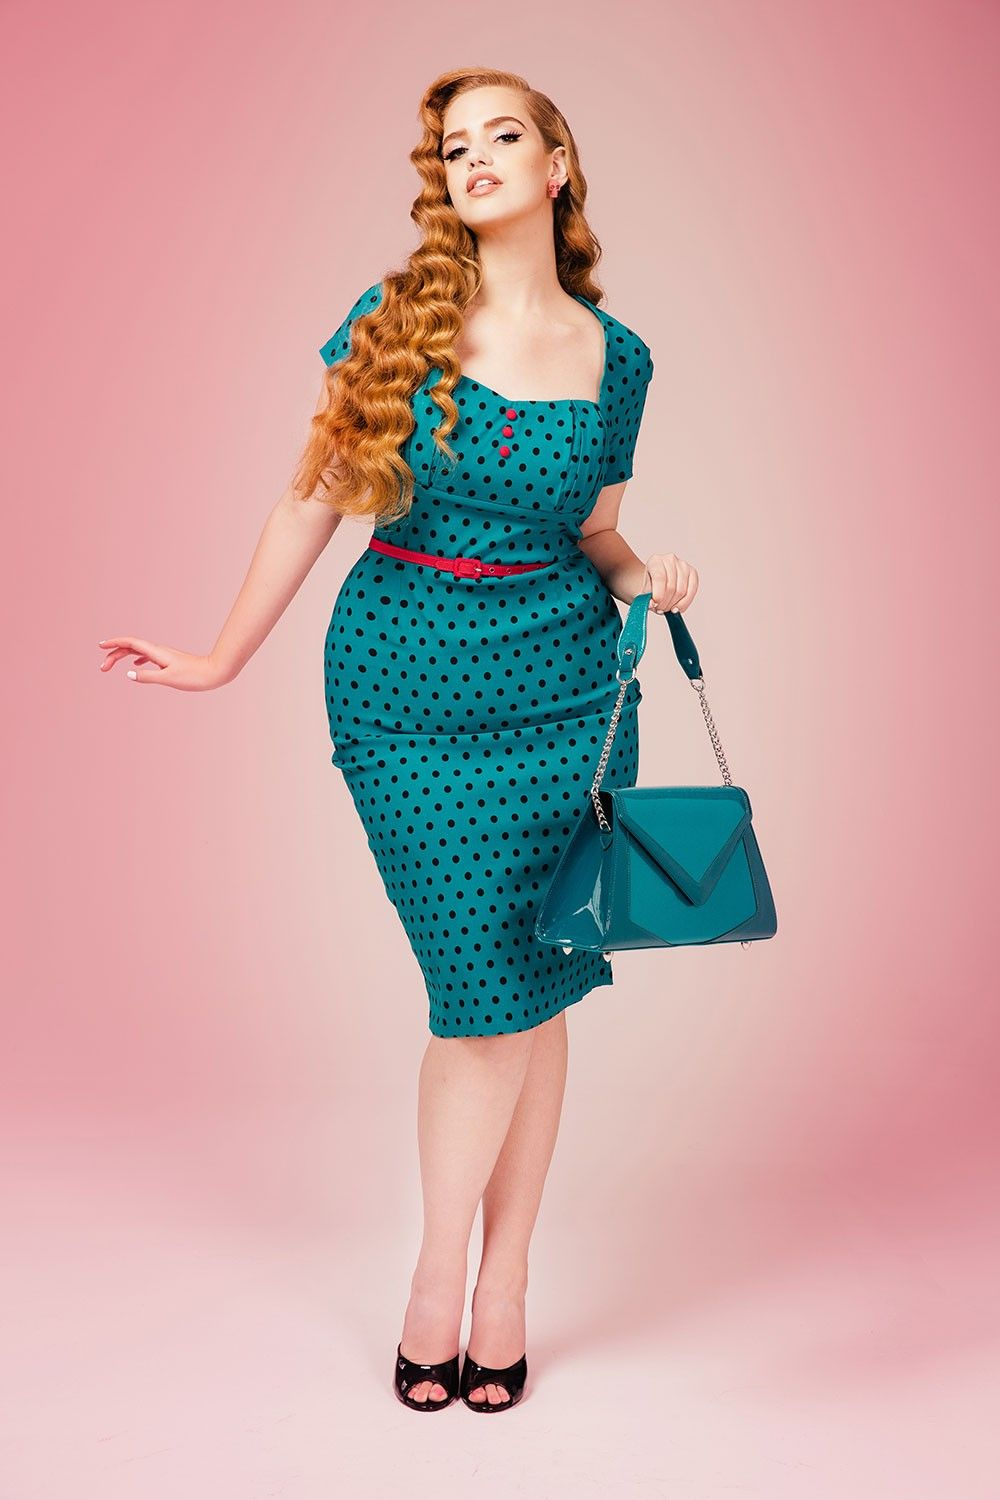 Charlotte Dress in Jade With Black Polka Dots - Plus Size | Dia&Co ...